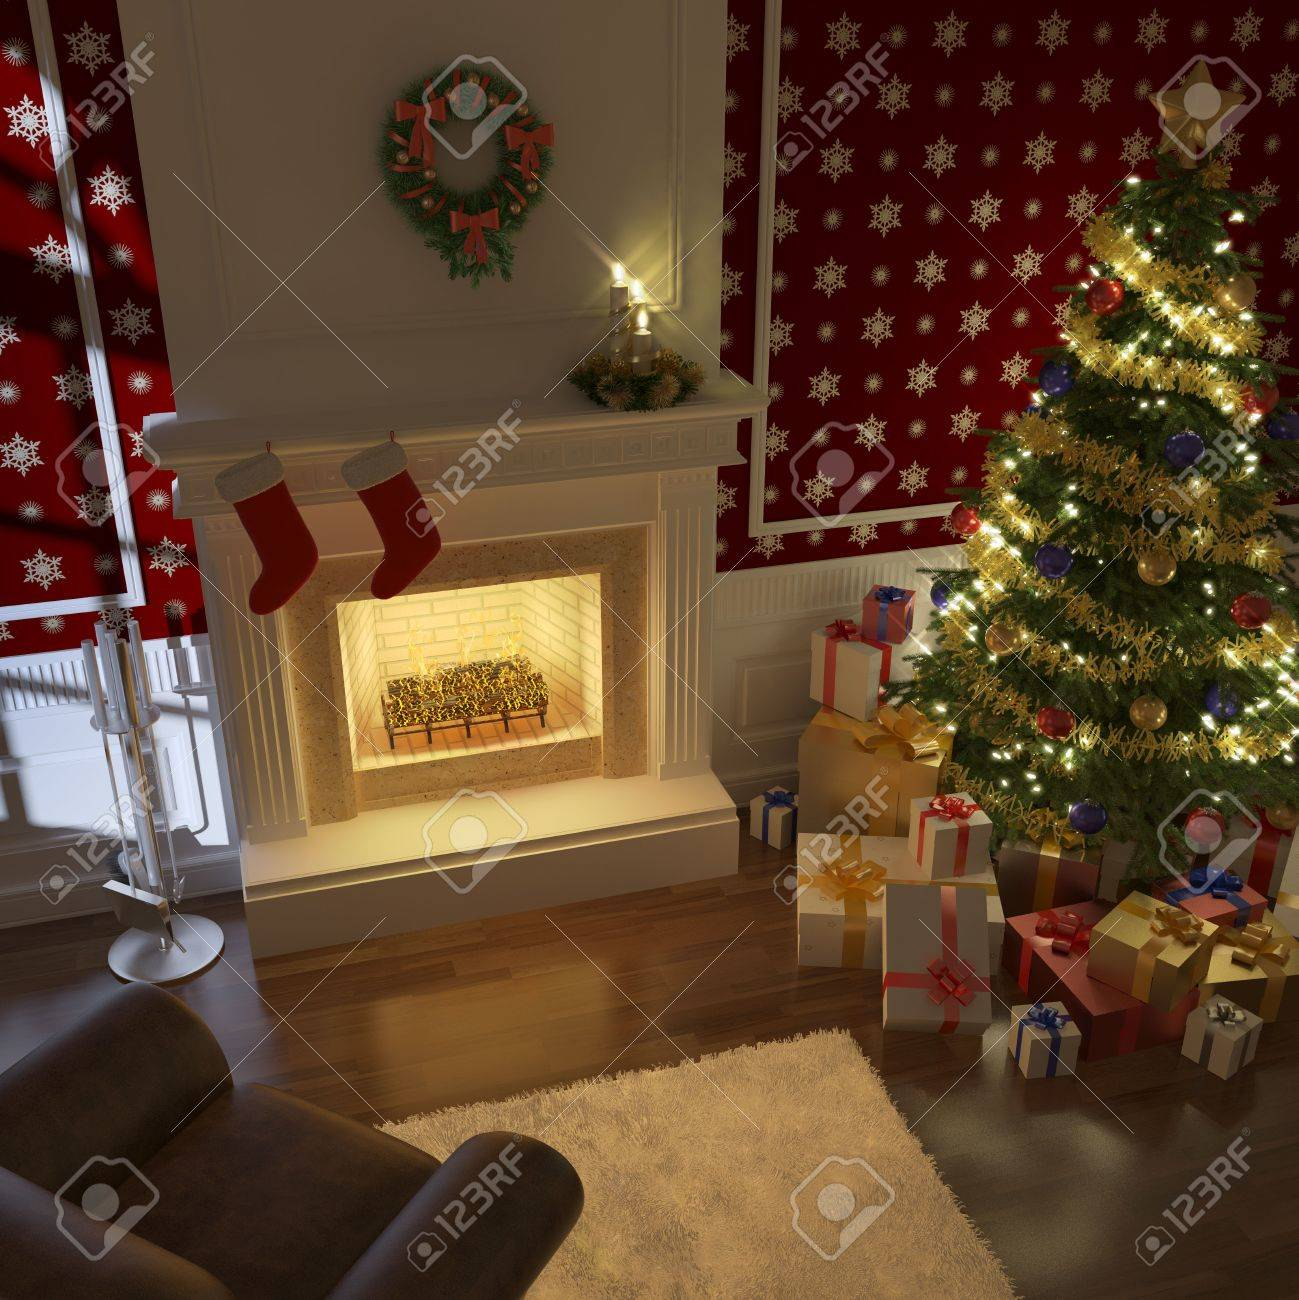 cozy decorated christmas fireplace at night with tree, presents and couch Stock Photo - 8163624